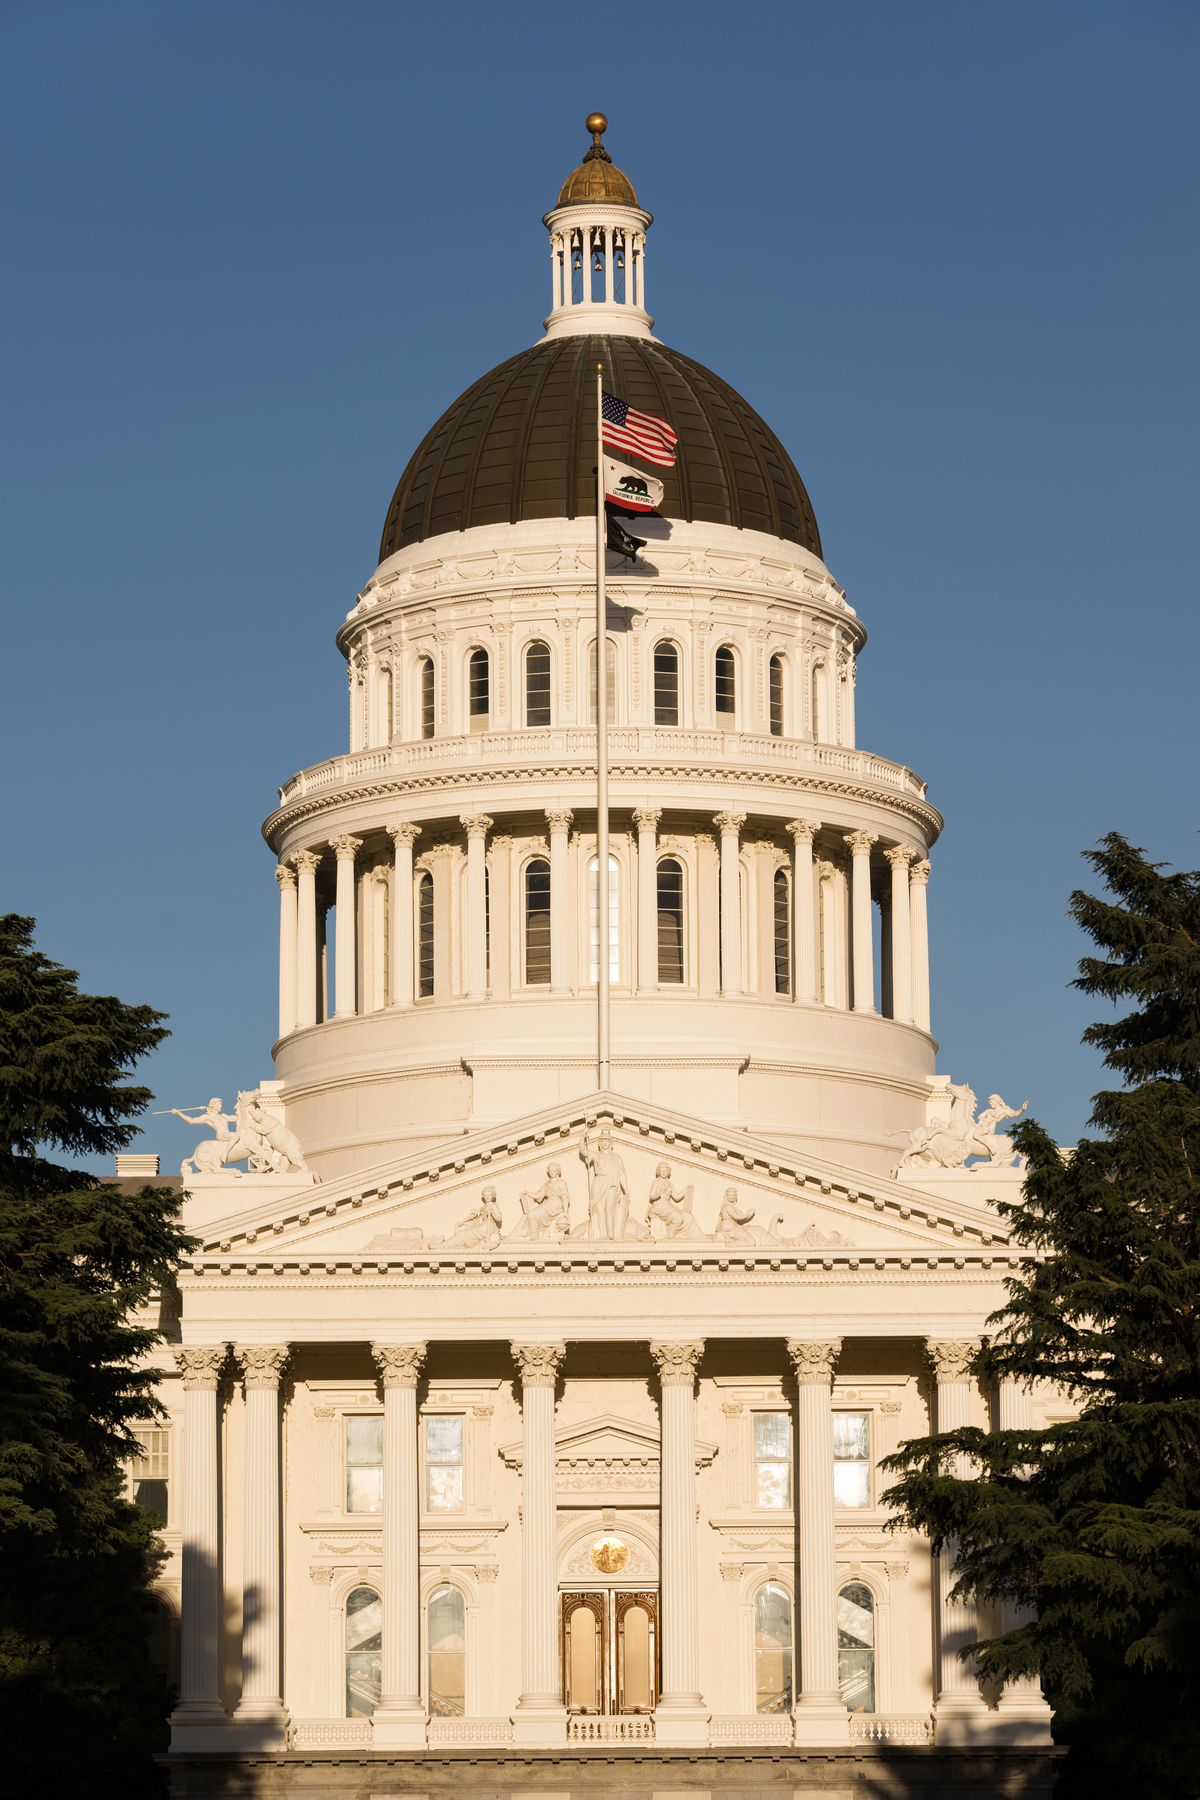 The flags fly in front of Sacramento's Capital Building